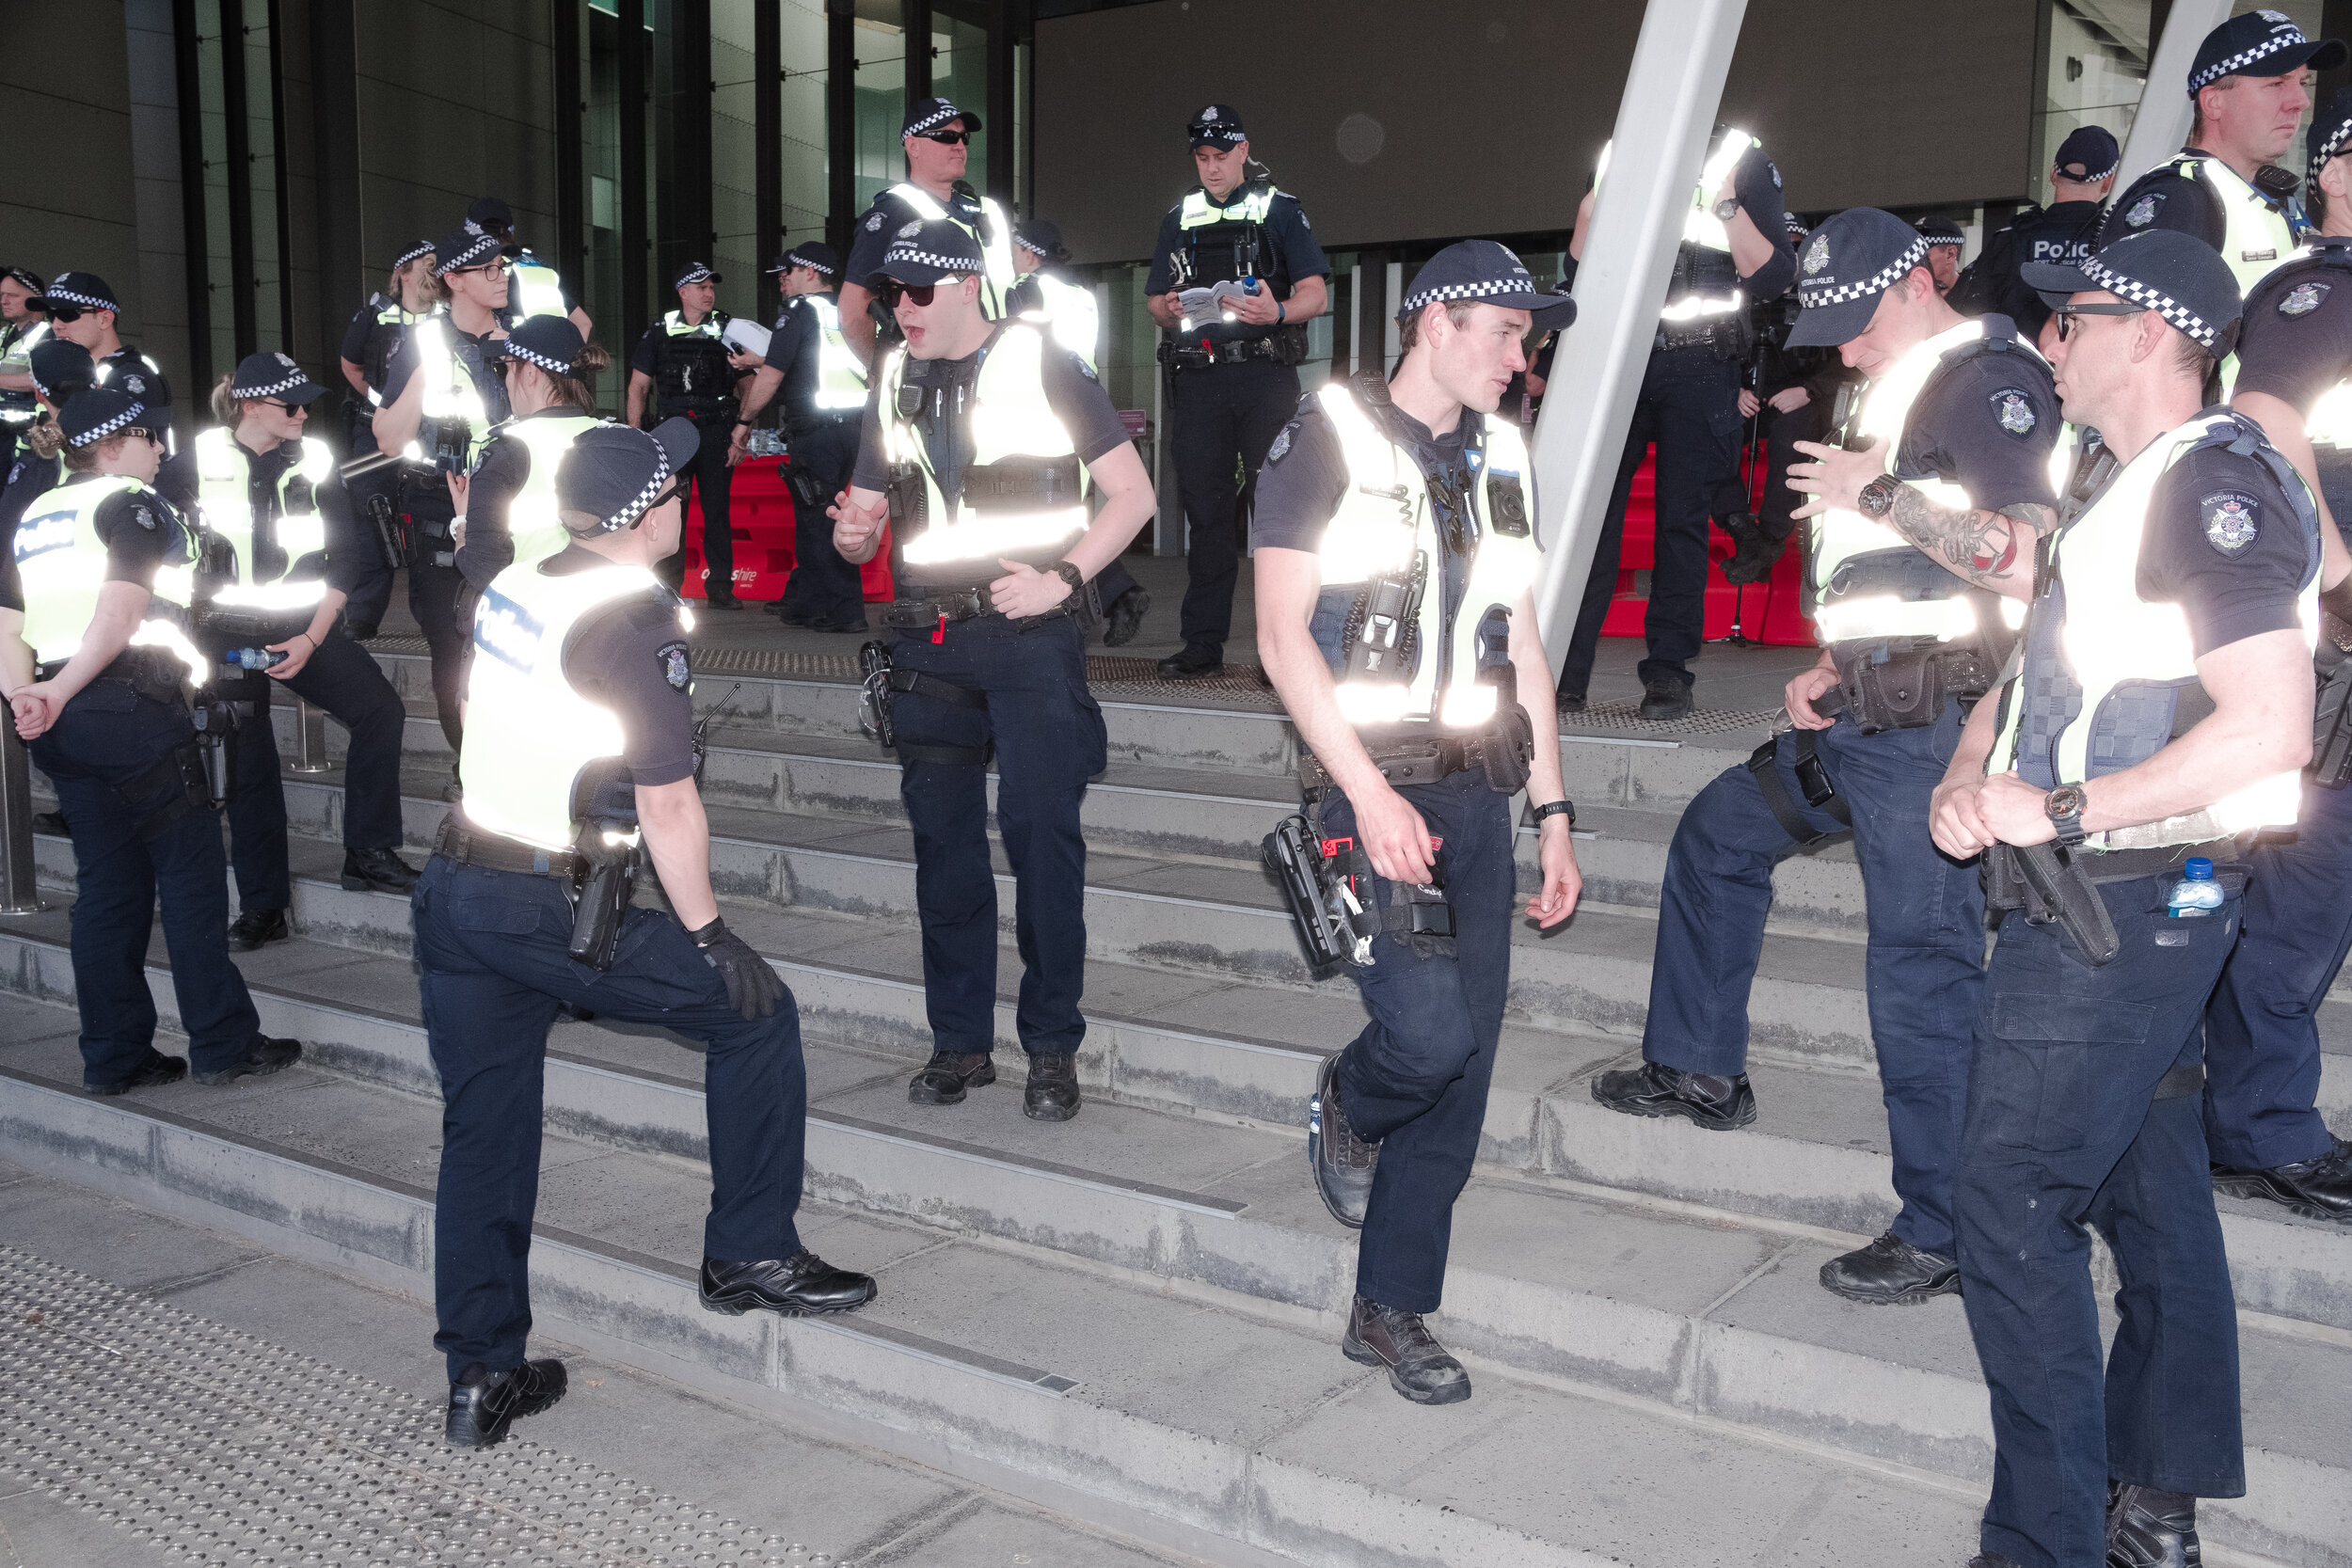 Victorian Police in front of the convention centre preventing activists from entering the conference. (Photo: Jeremy Gan)